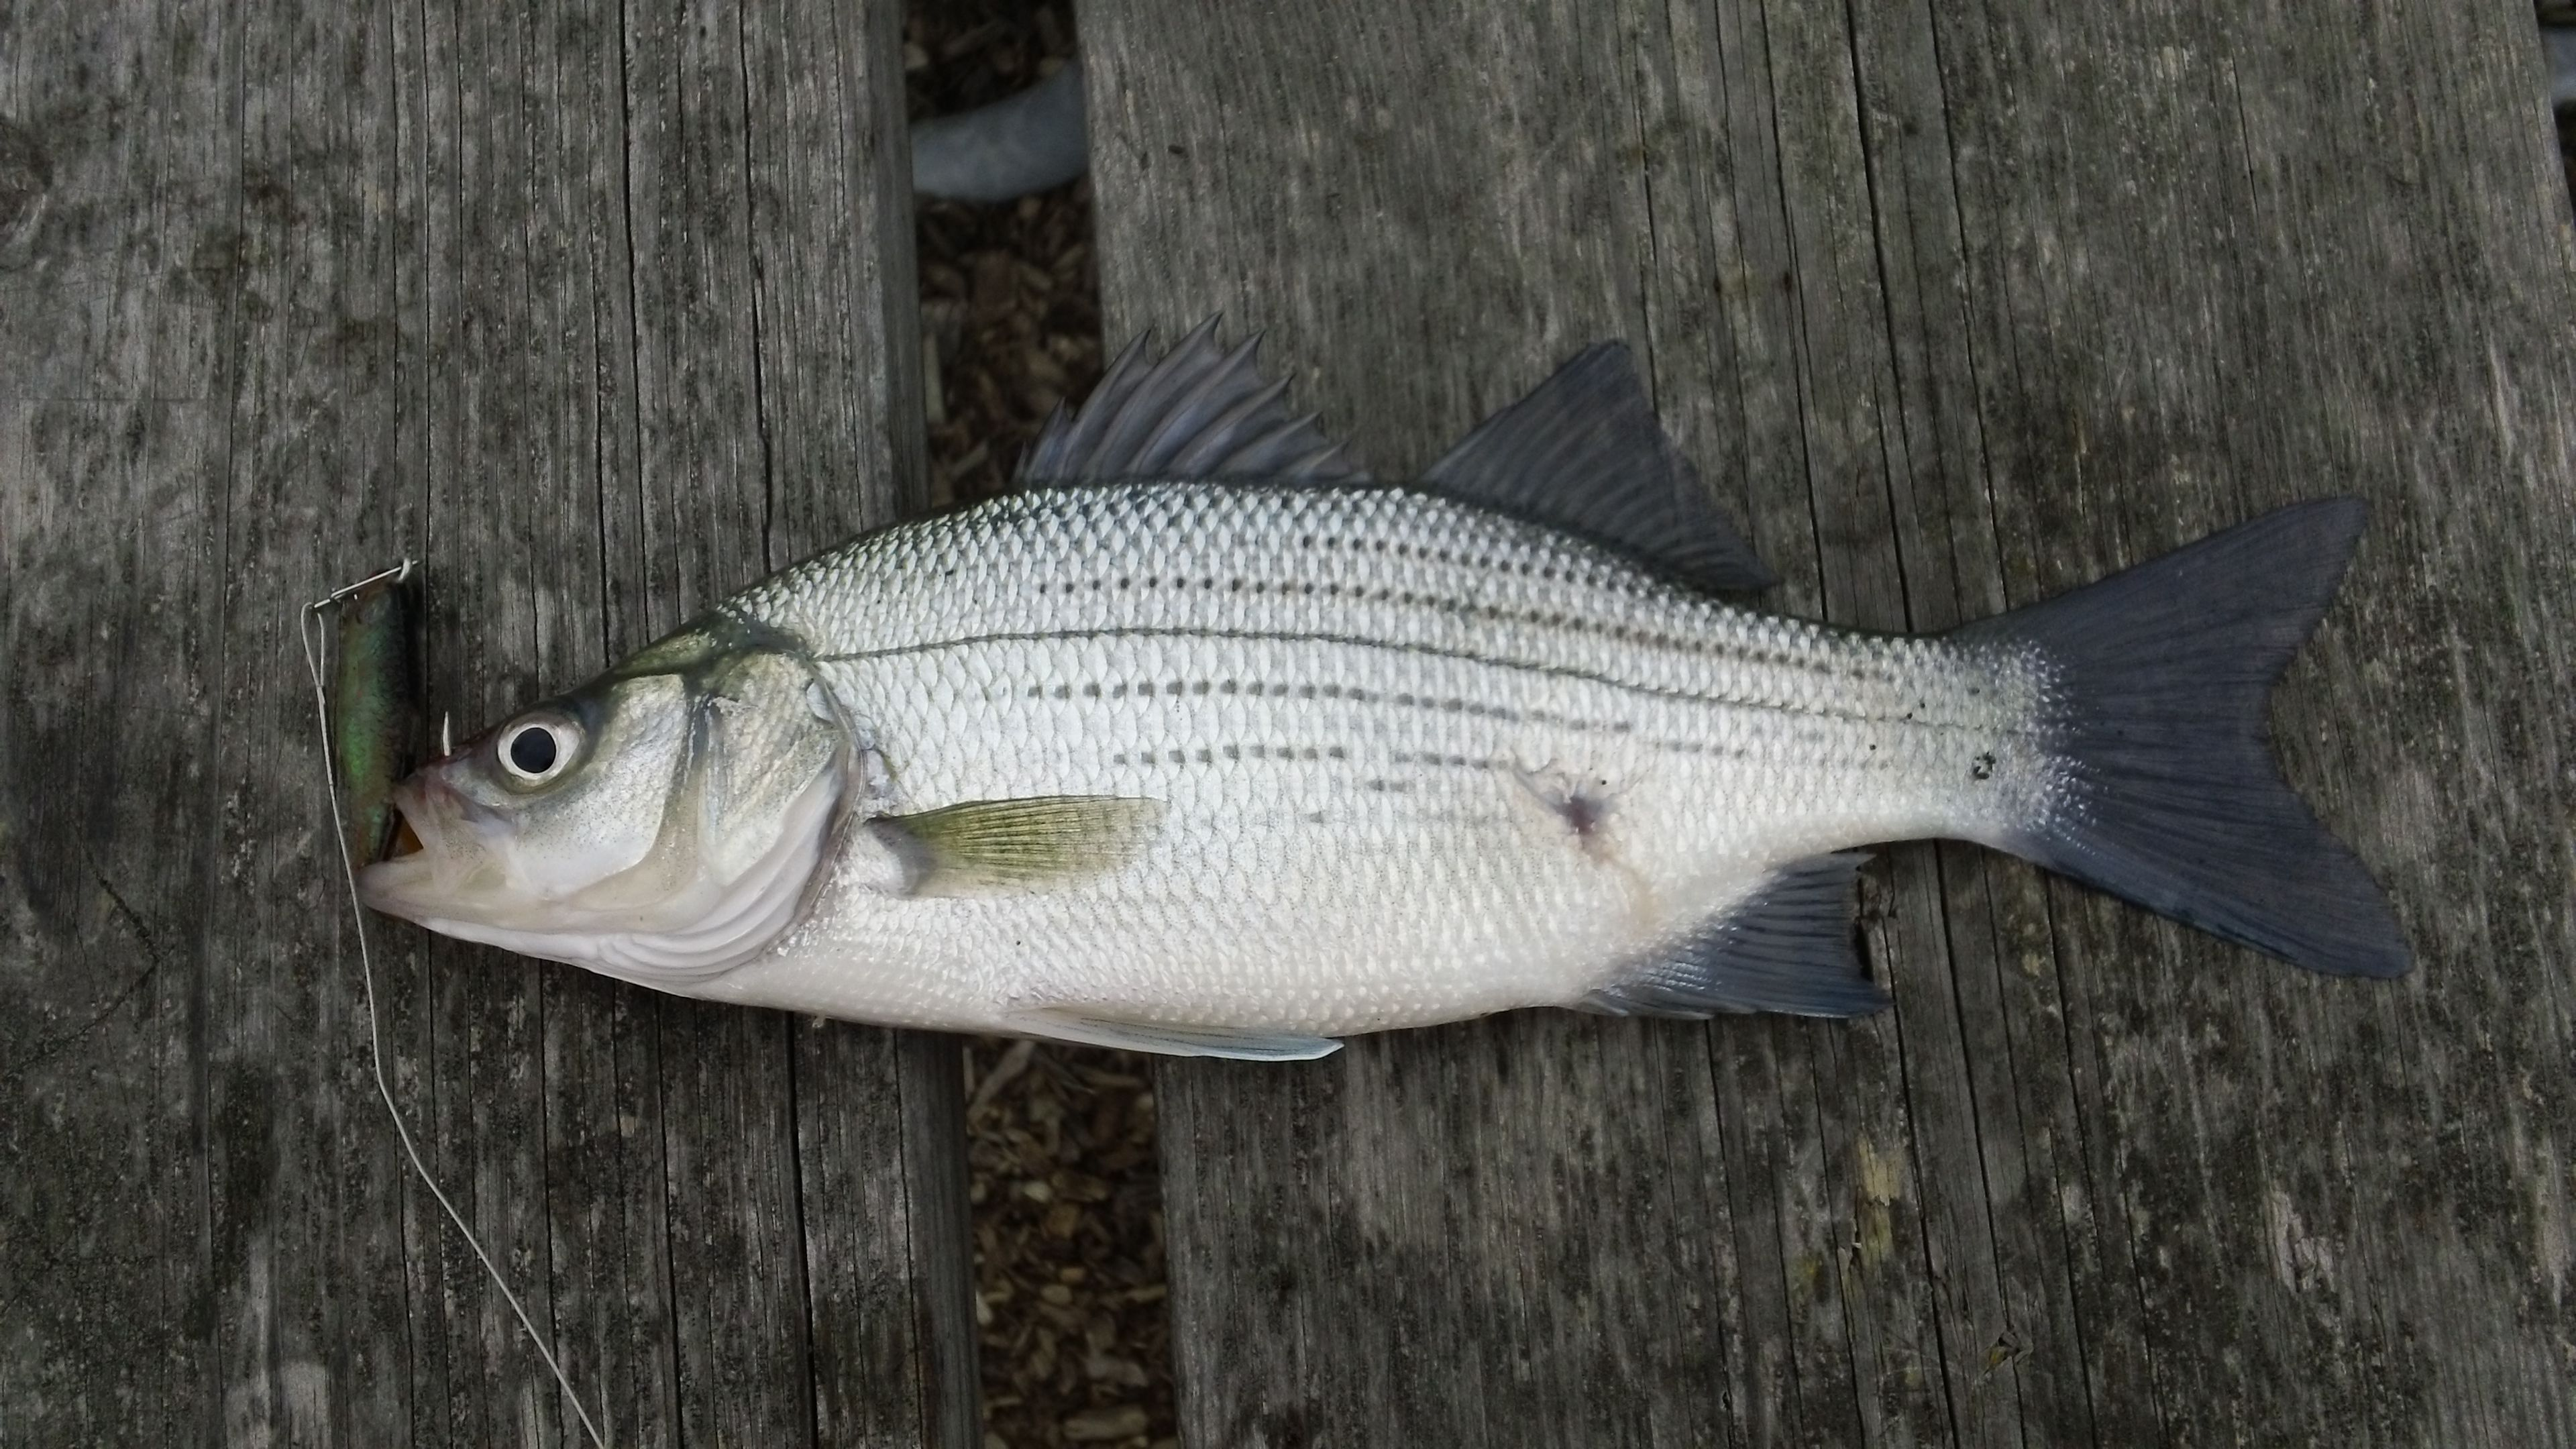 Fishing for white bass in lakes for White bass fishing lures